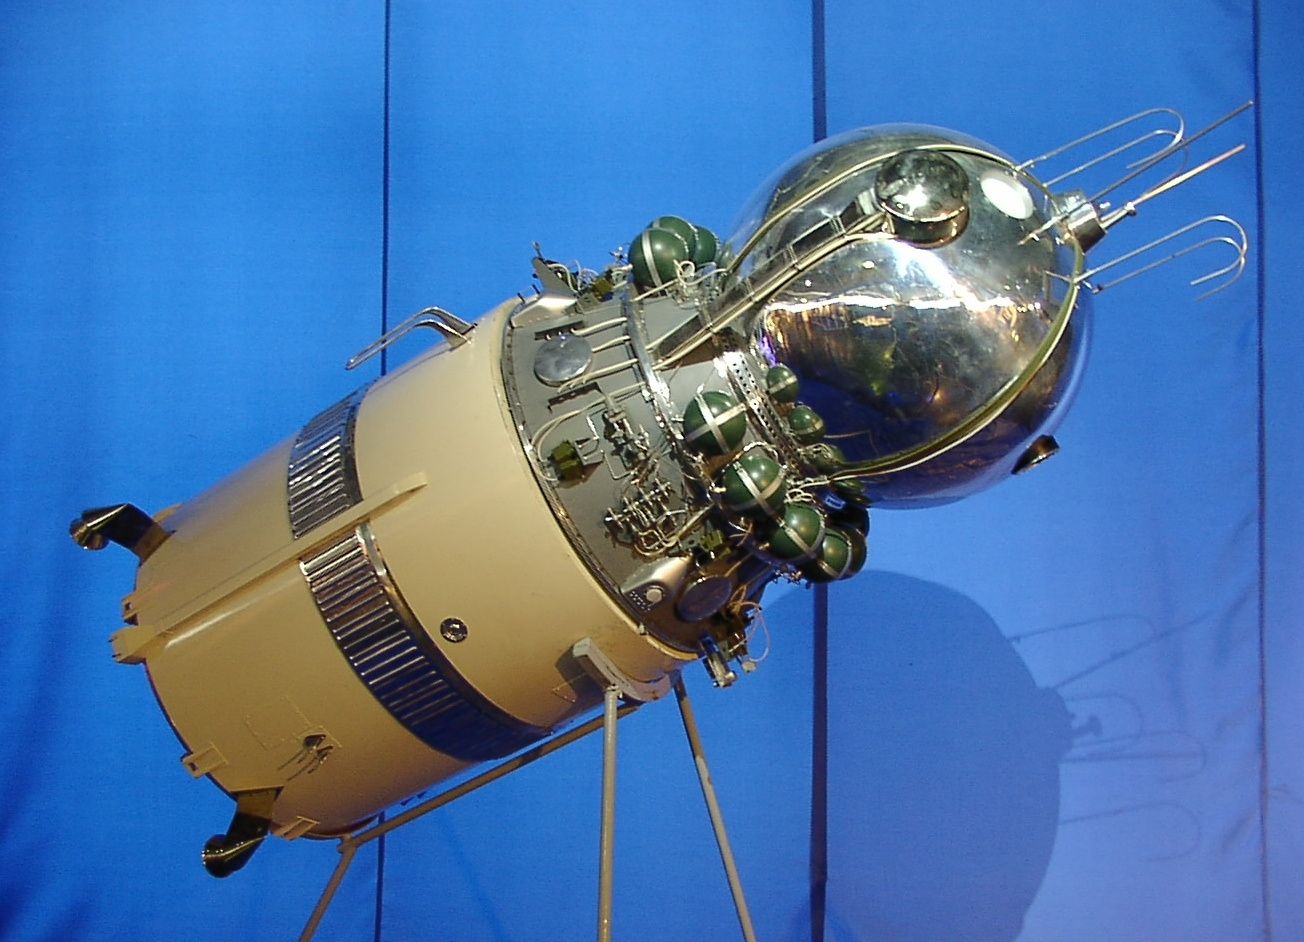 vostok spacecraft - photo #3